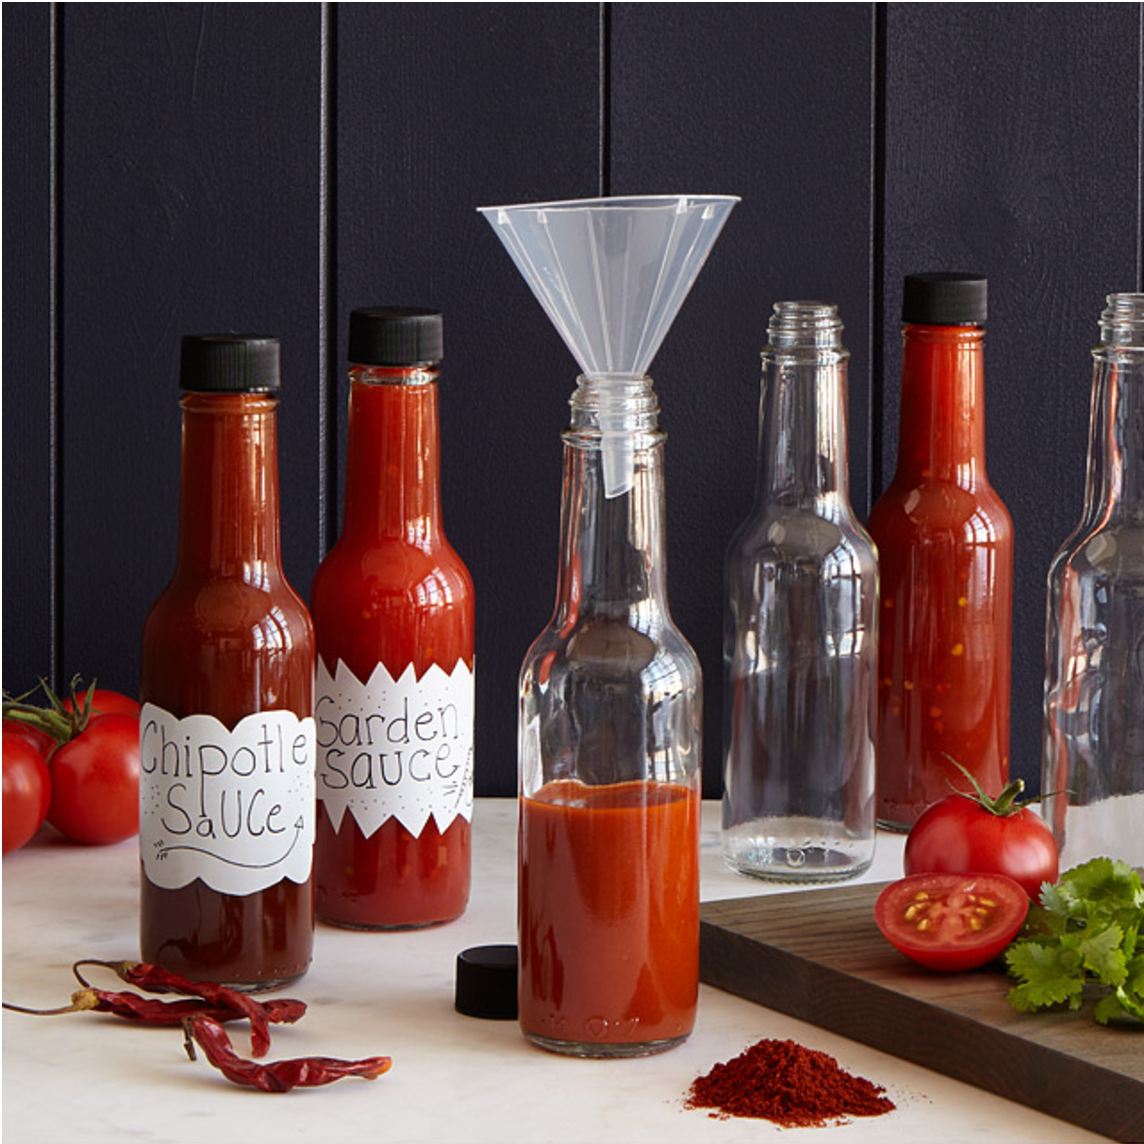 check out the hot sauce making kit here